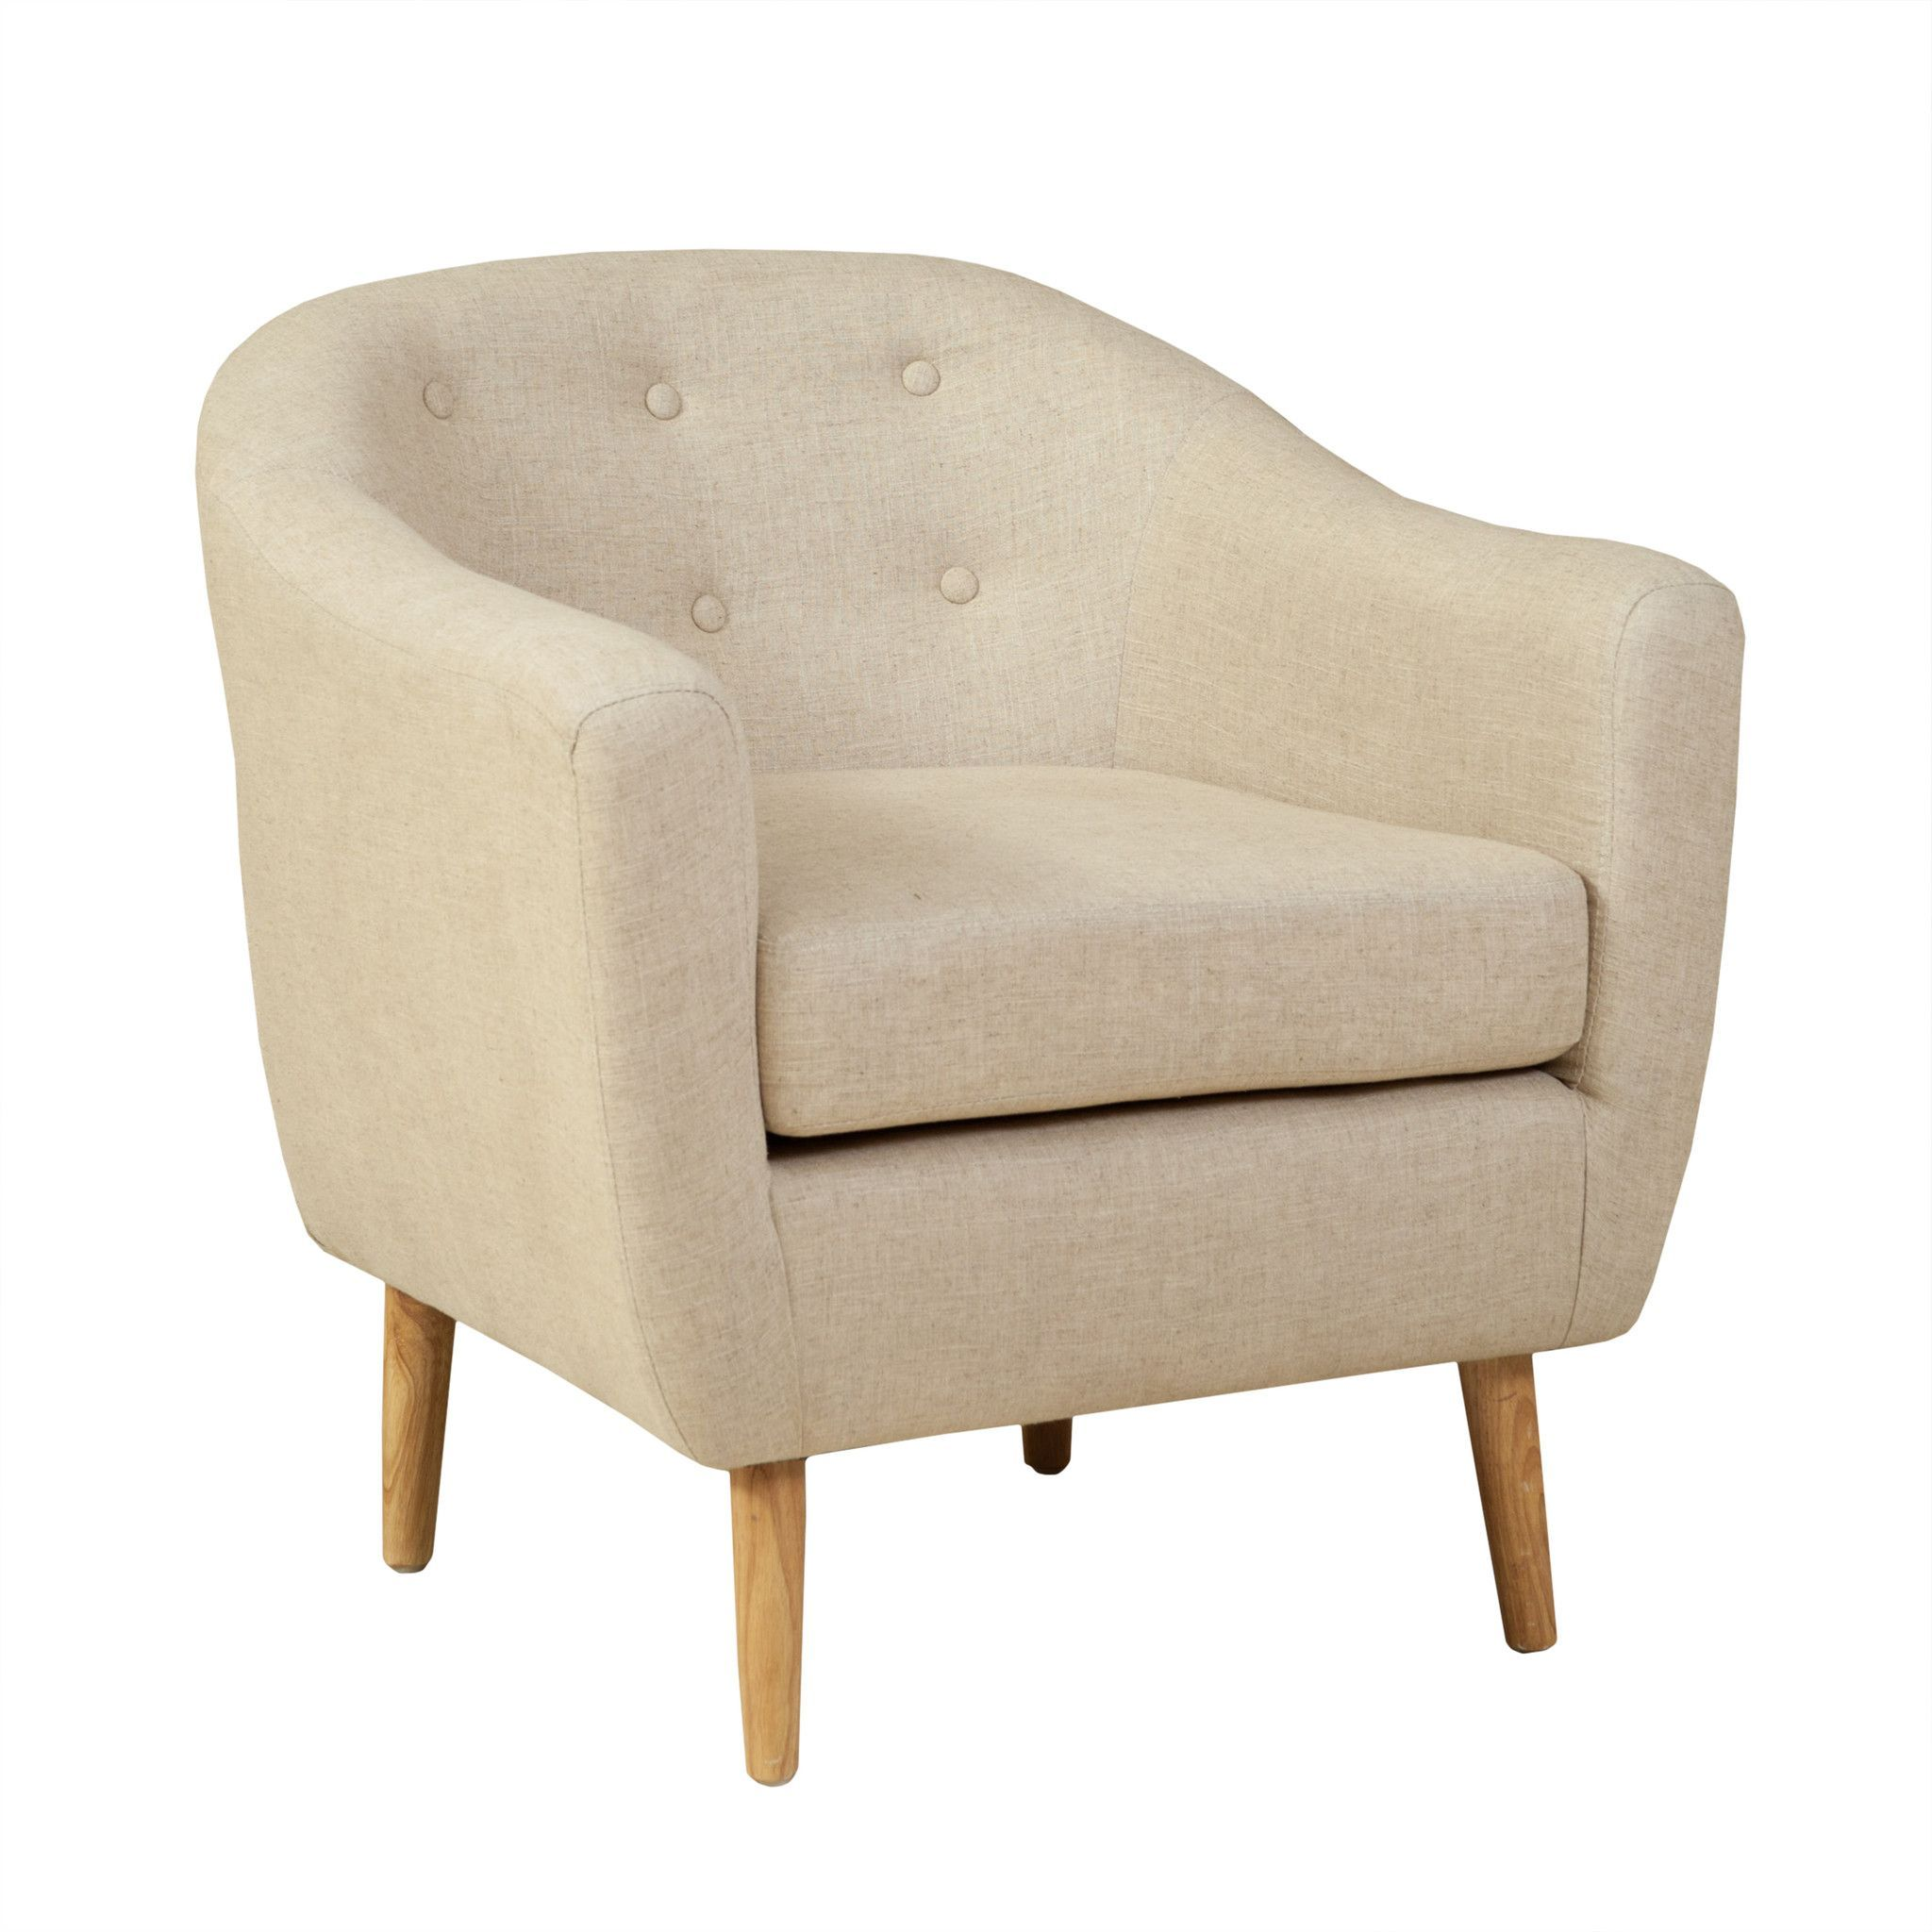 Chicago Beige Club Chair Upholstered Chairs Club Chairs Chair